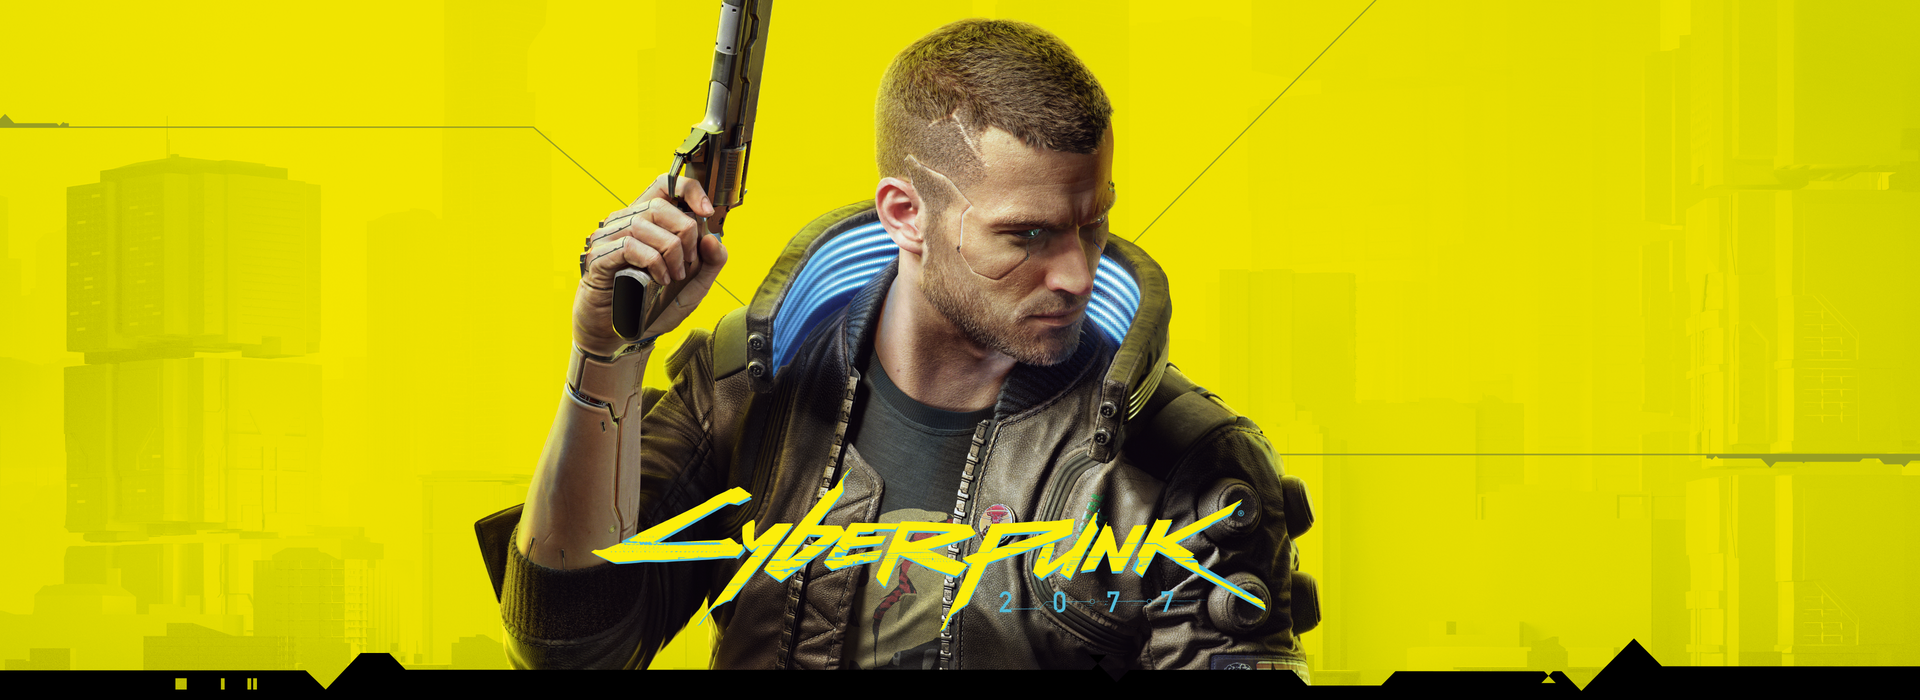 Cyberpunk 2077 video game branded title key visual